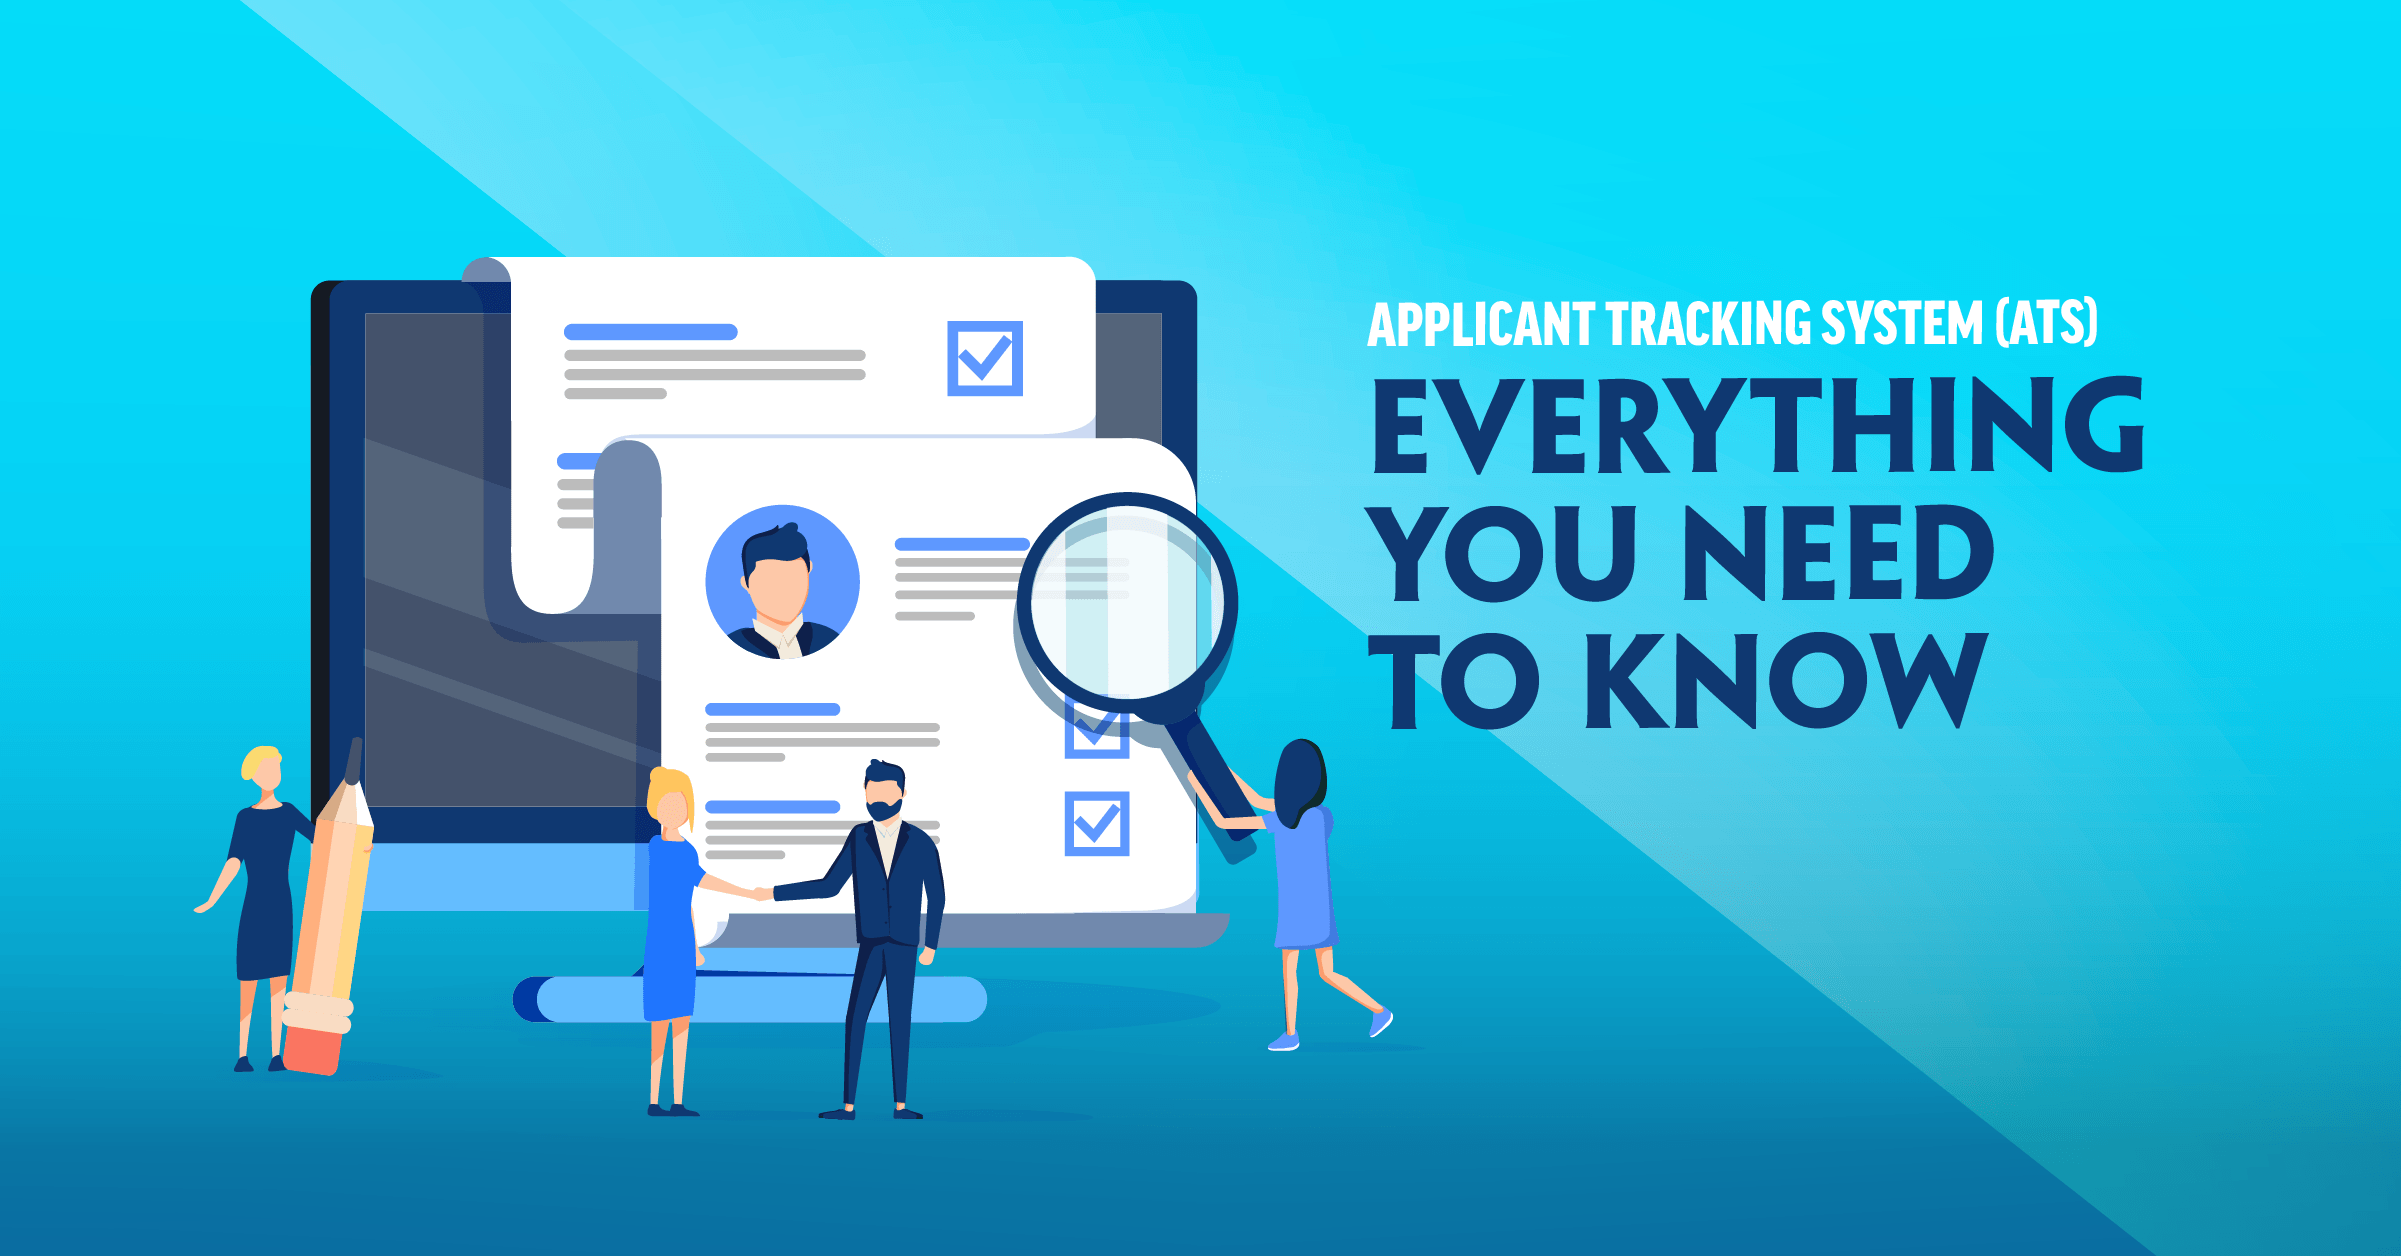 What Does Ats Mean >> Applicant Tracking System Ats Everything You Need To Know